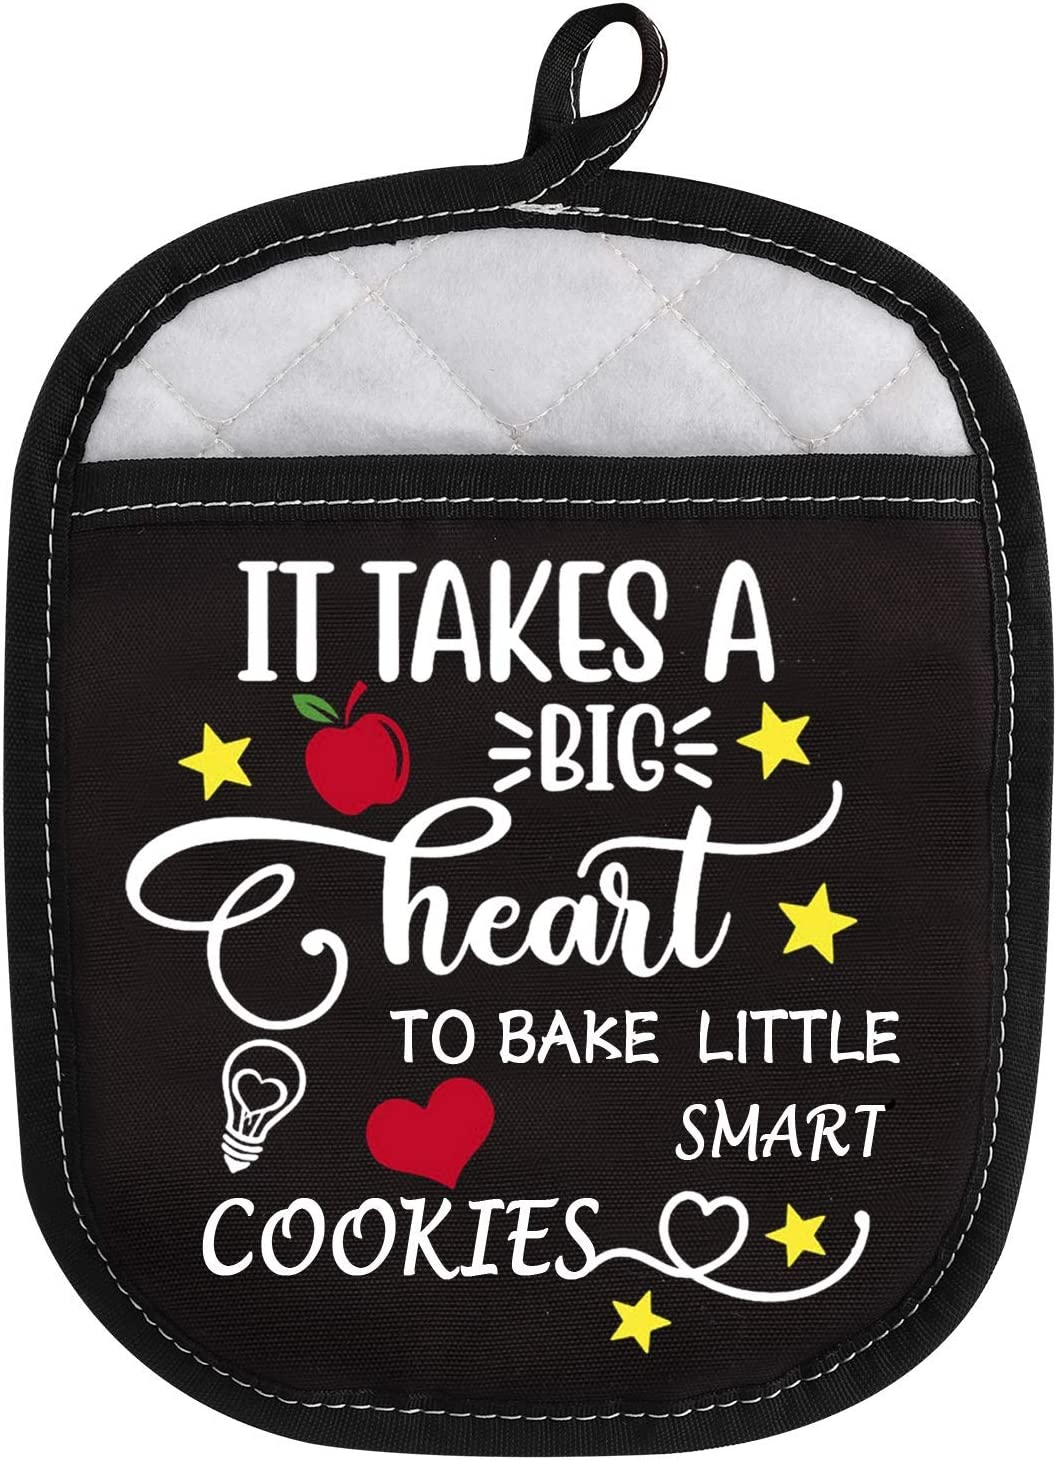 Oven Pads Pot Holder with Pocket for Teacher It Takes A Big Heart to Bake Little Smart Cookies (Bake Little Smart Cookies)